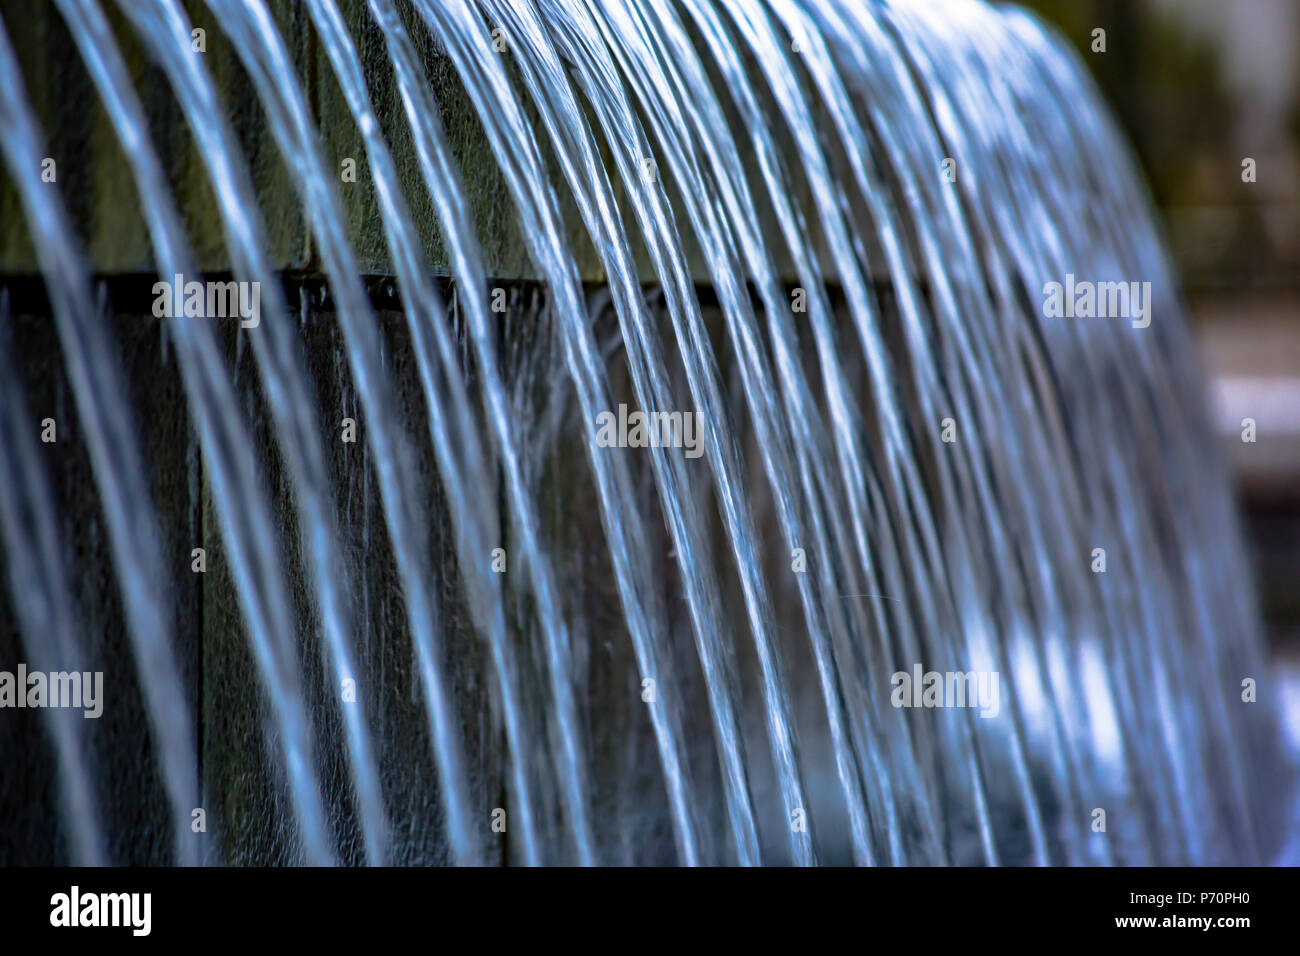 Water fountain with multiple falling streams - Stock Image